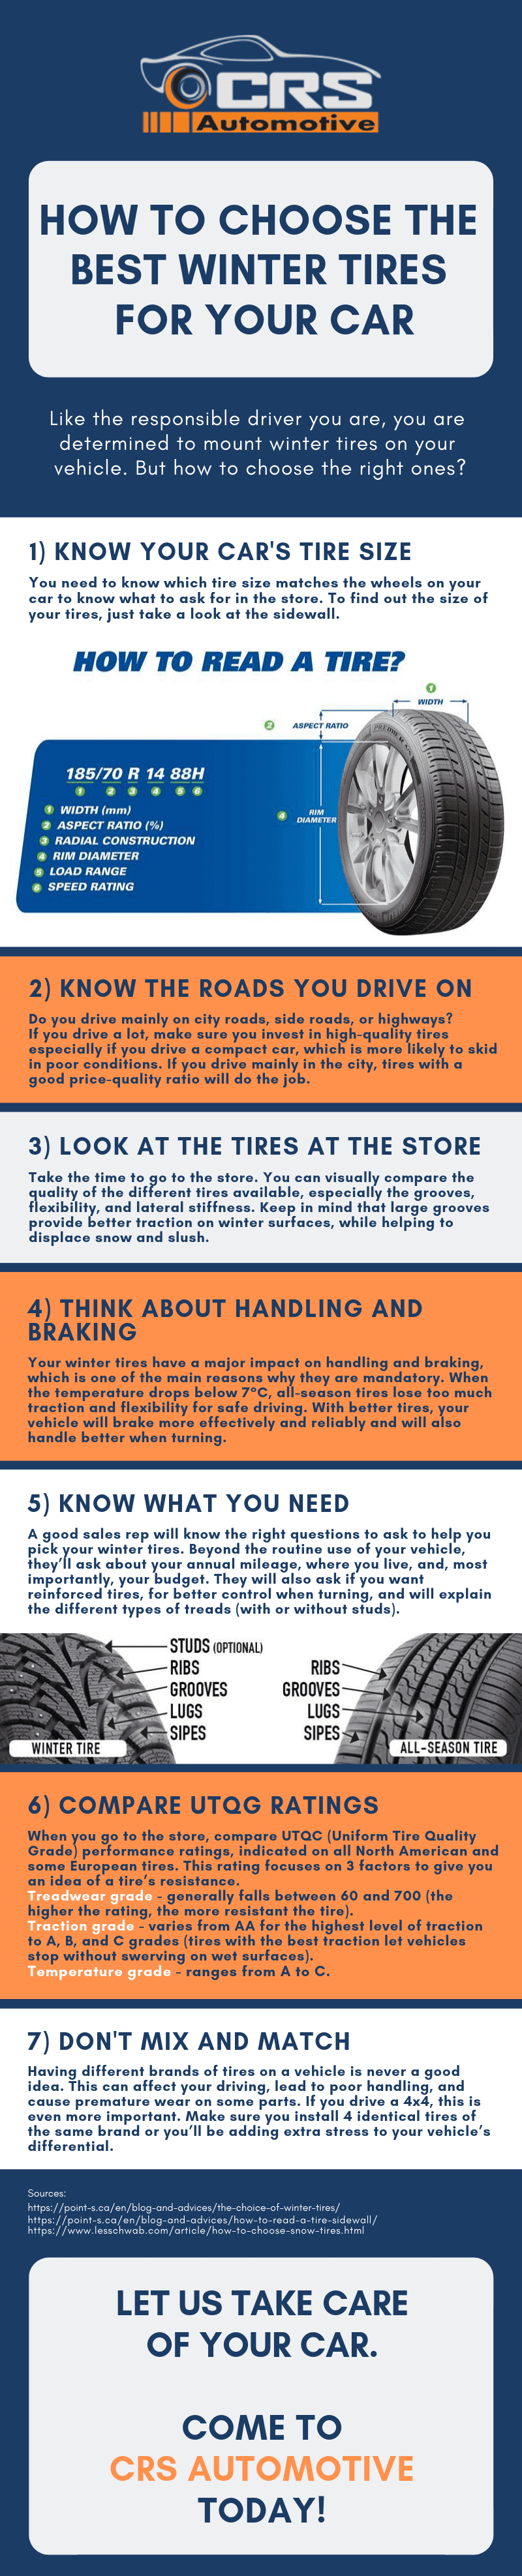 How To Choose The Best Winter Tires For Your Car Infographic